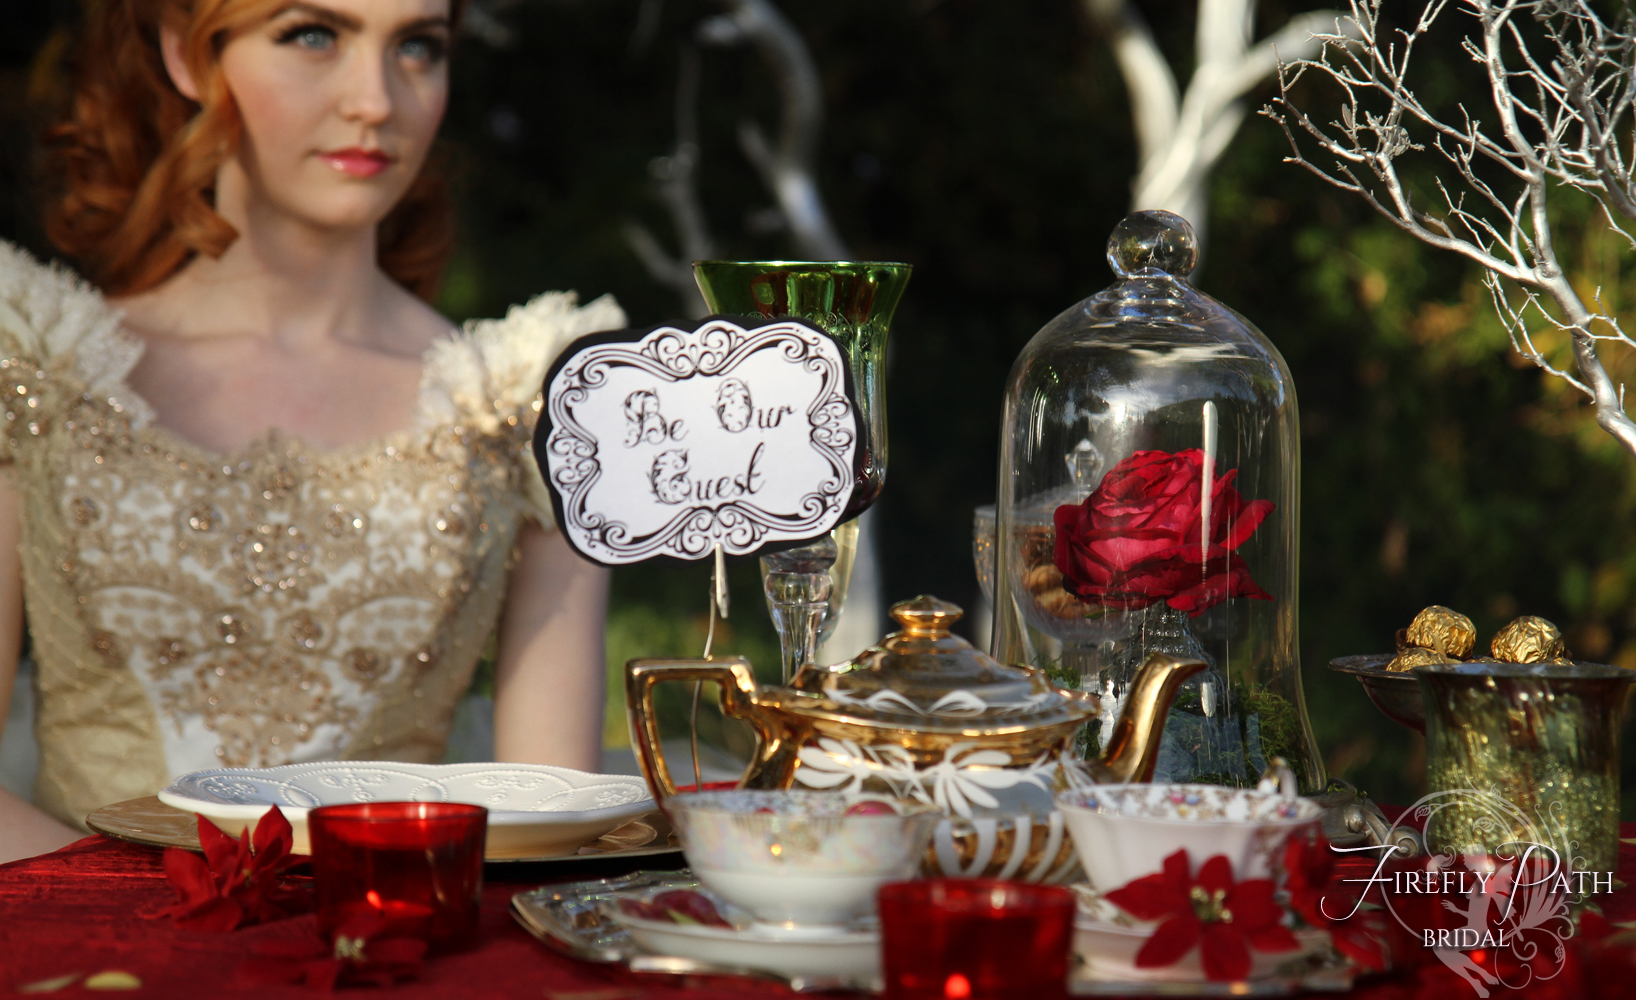 Beauty and the Beast Themed Wedding by Lillyxandra